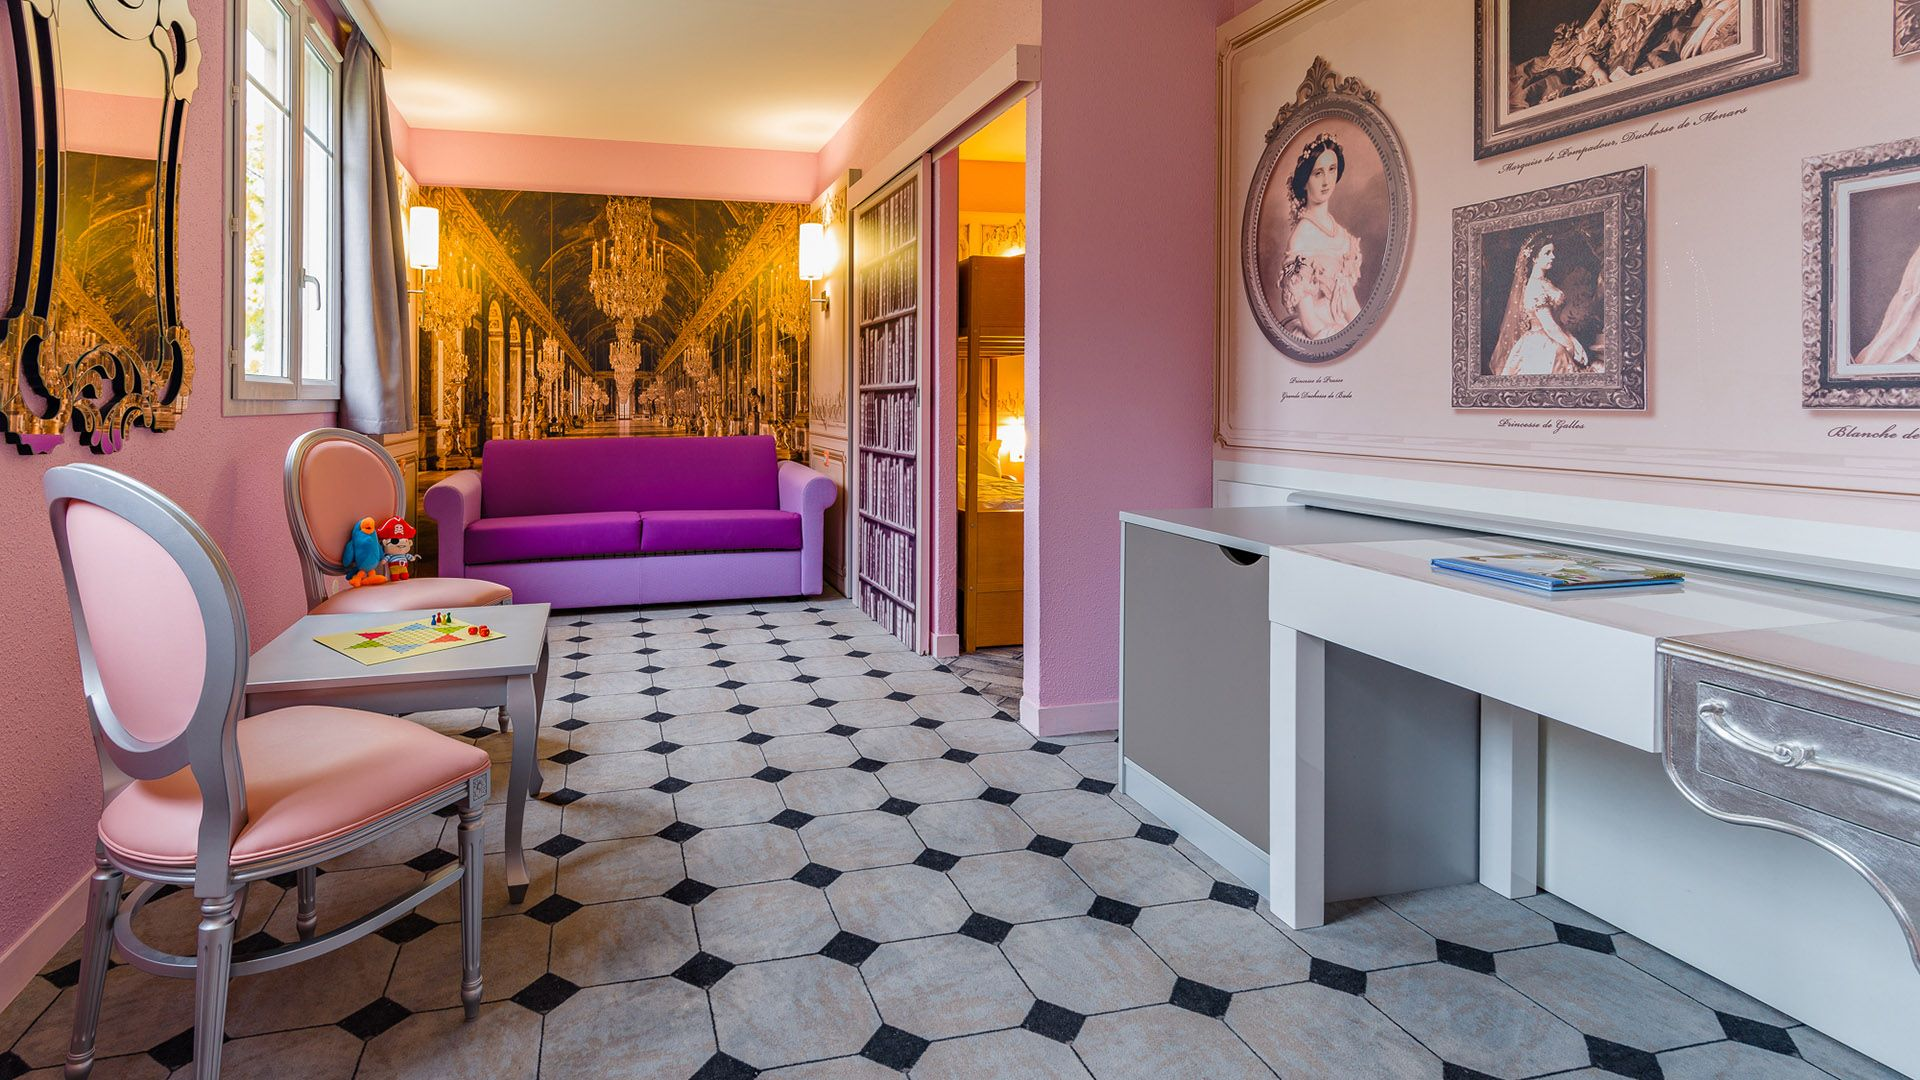 Camere Disneyland Paris : Apartment disneyland paris home sweet home bussy saint georges